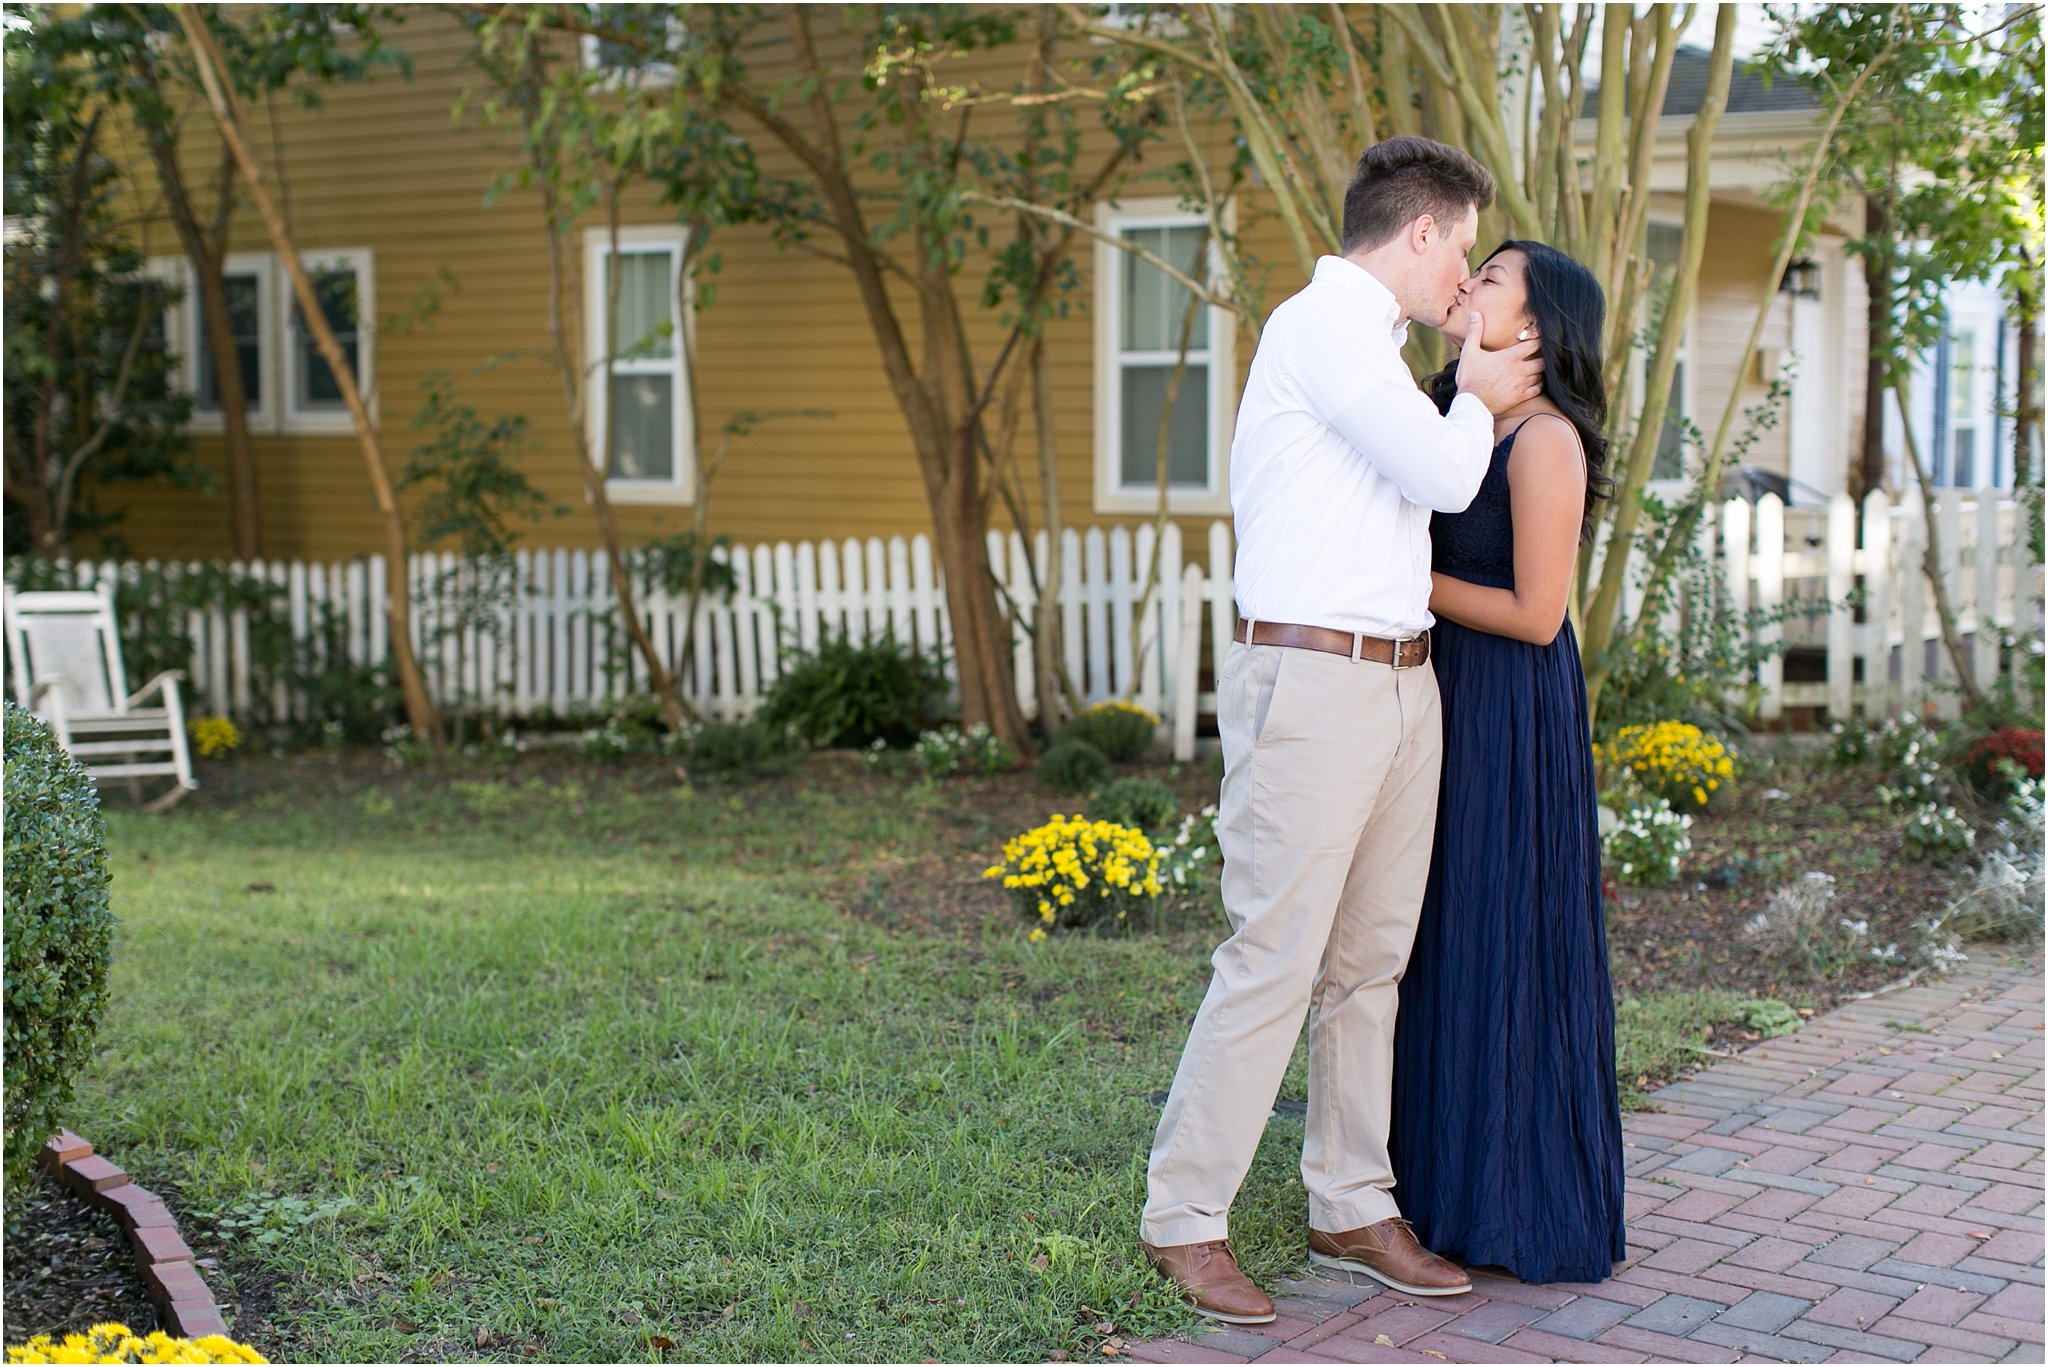 jessica_ryan_photography_virginia_smithfield_historical_downtown_engagement_portraits_candid_authentic_3696